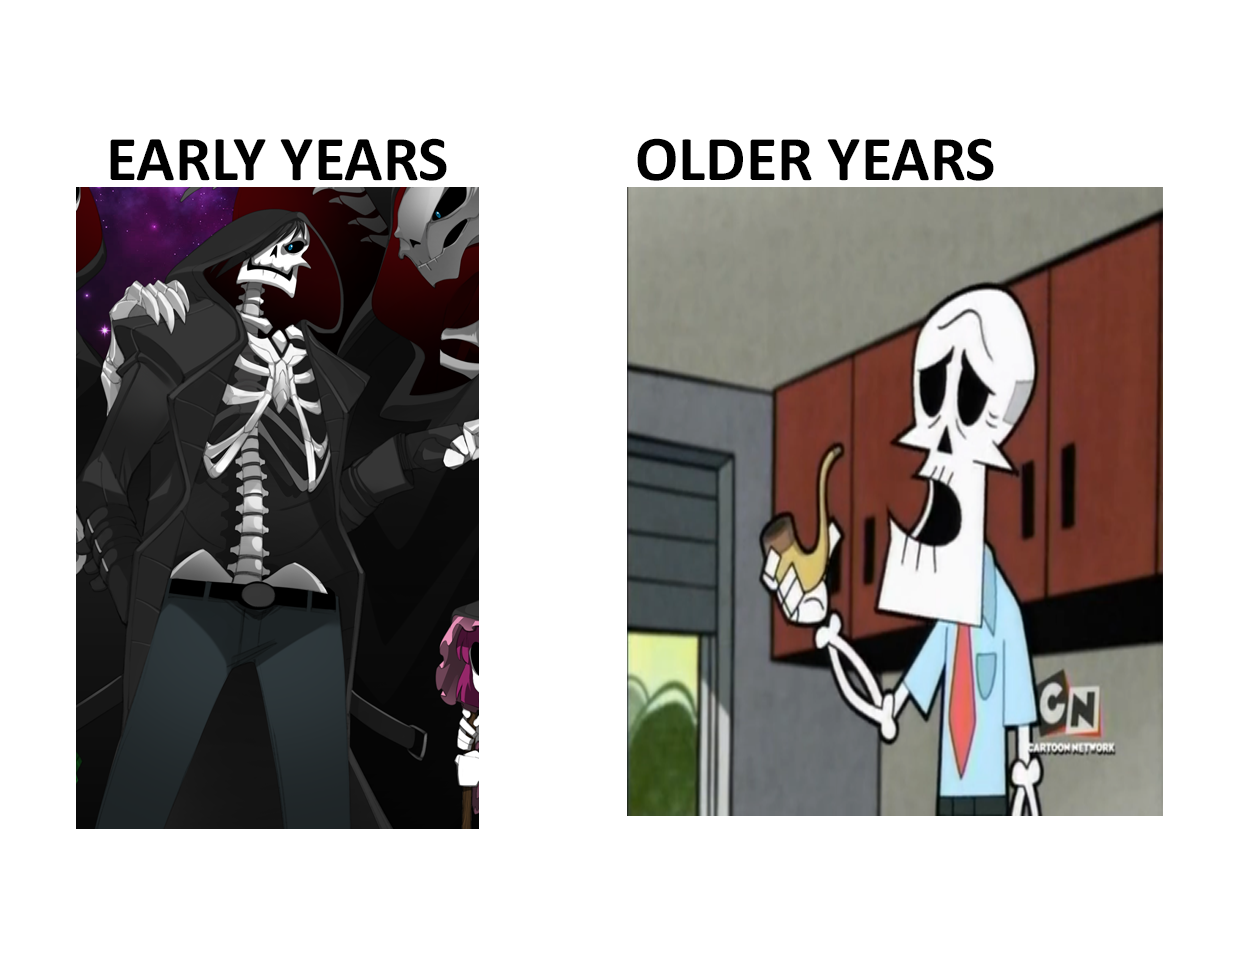 grim s dad the grim adventures of billy and mandy know your meme